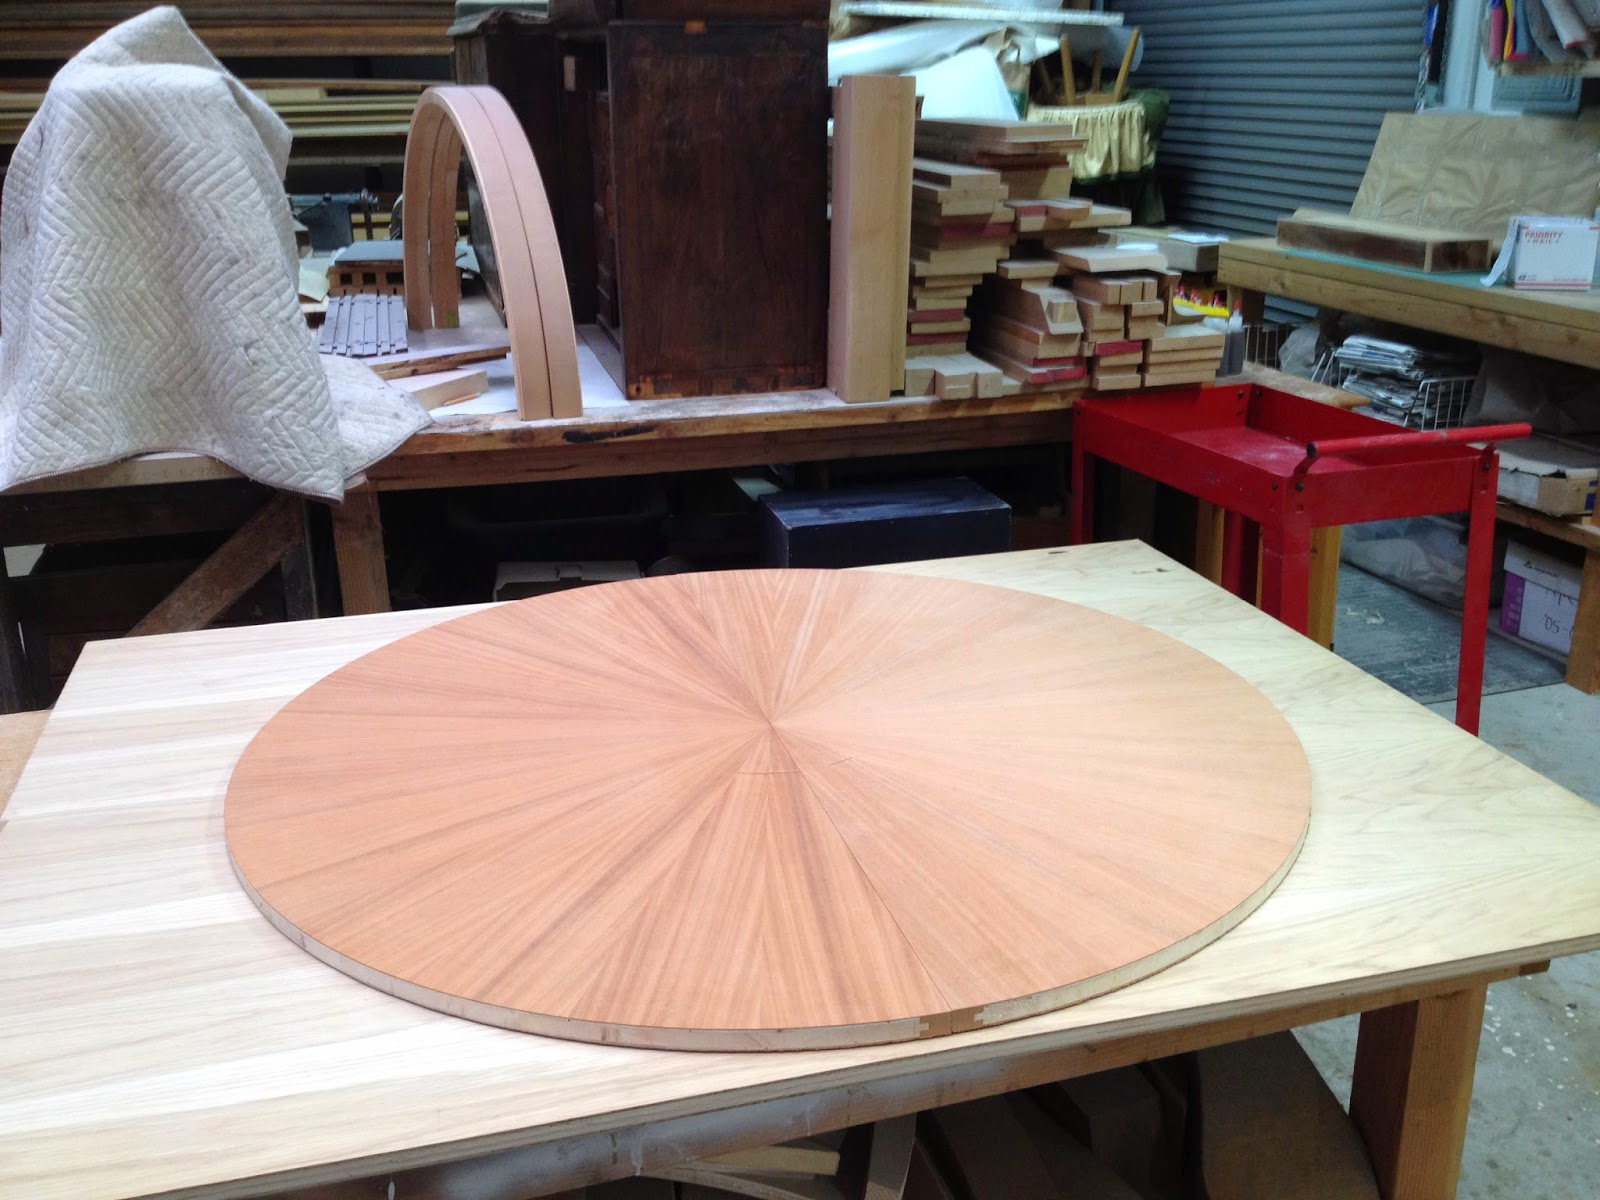 Biedermeier/30's Dining Room Table #3: - Almost done